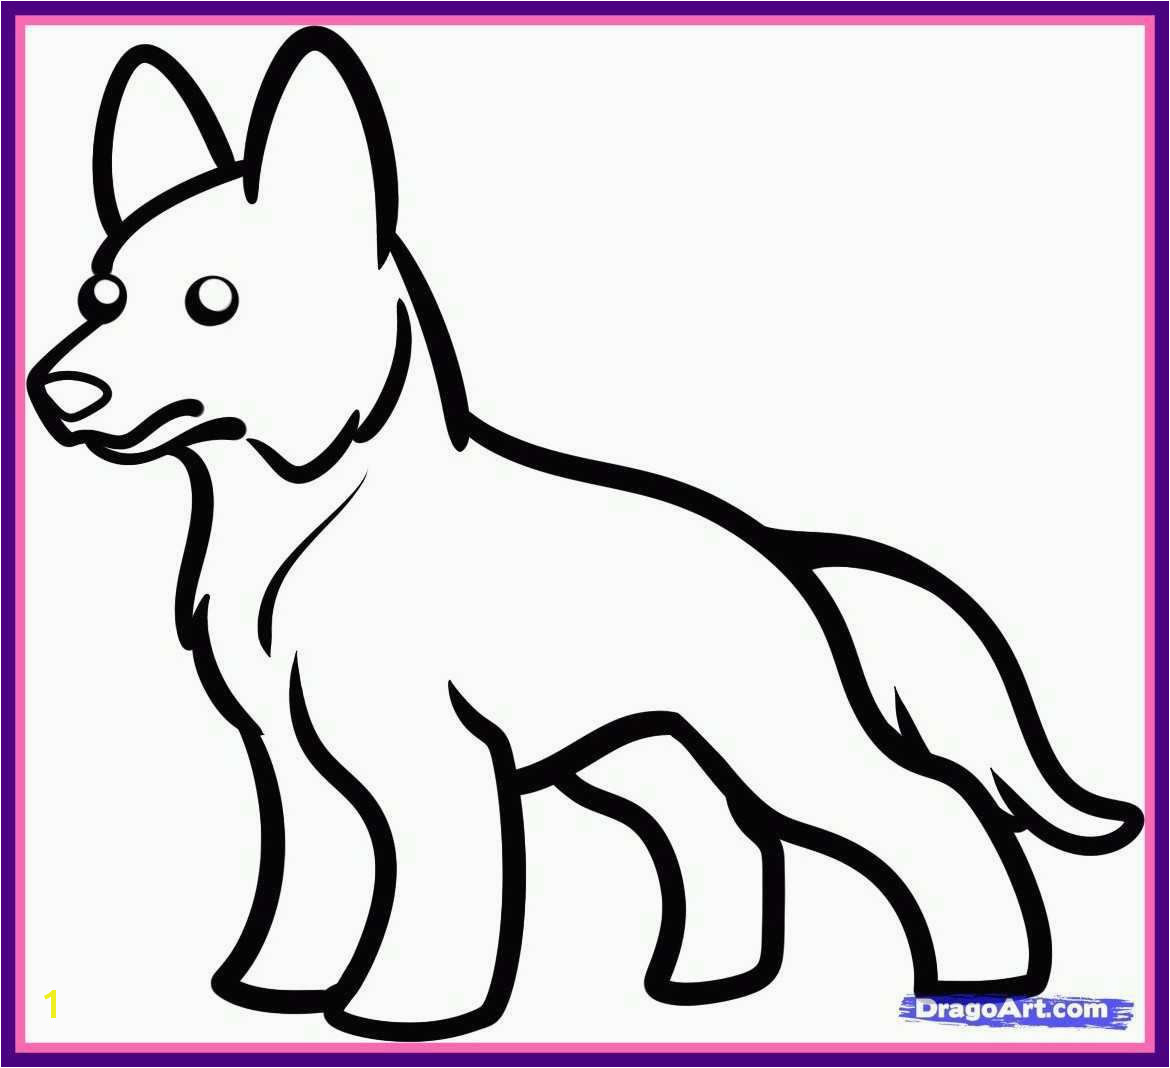 Real Puppy Coloring Pages Unique German Shepherd Puppy Coloring Pages Inspirational German Shepherd Real Puppy